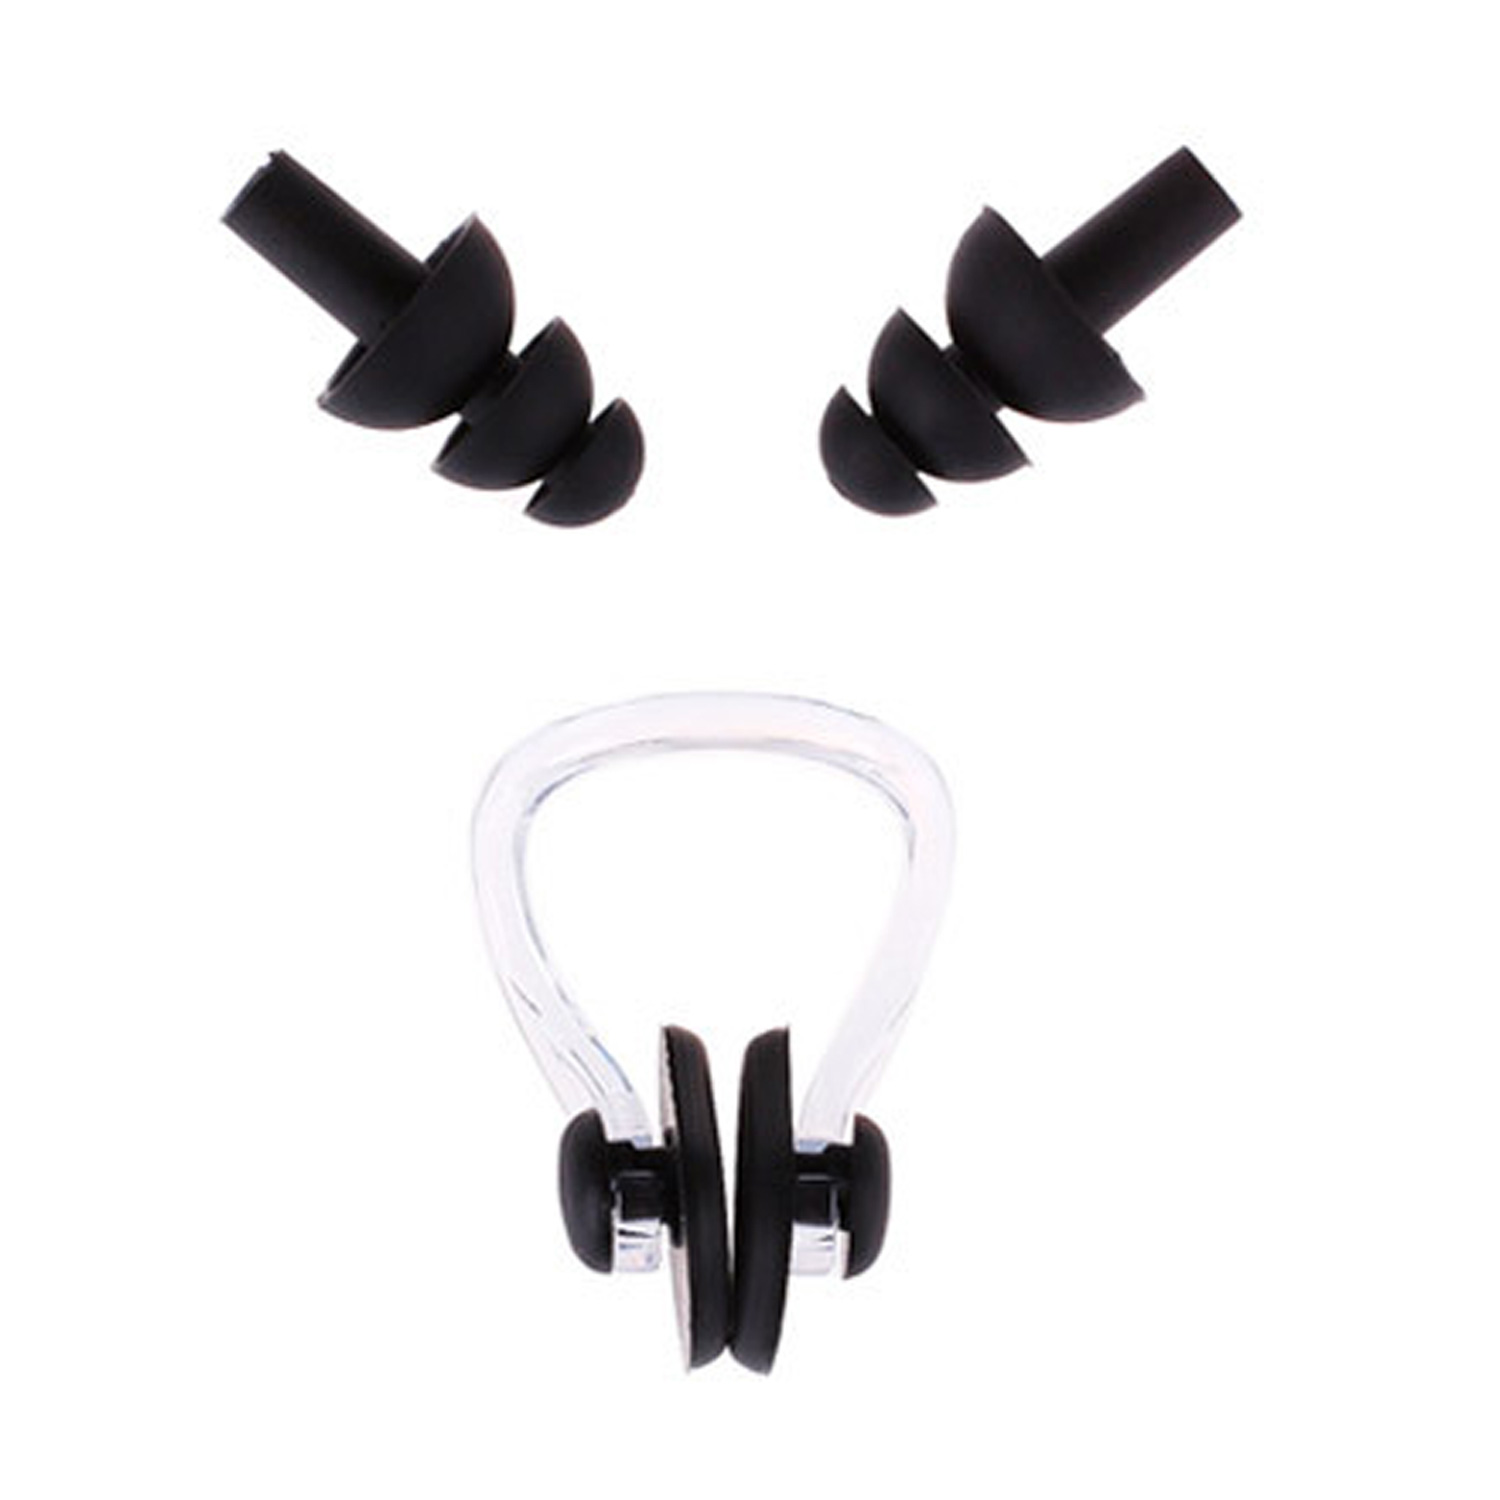 Swimming Earplugs and Nose clip (3- Pack)